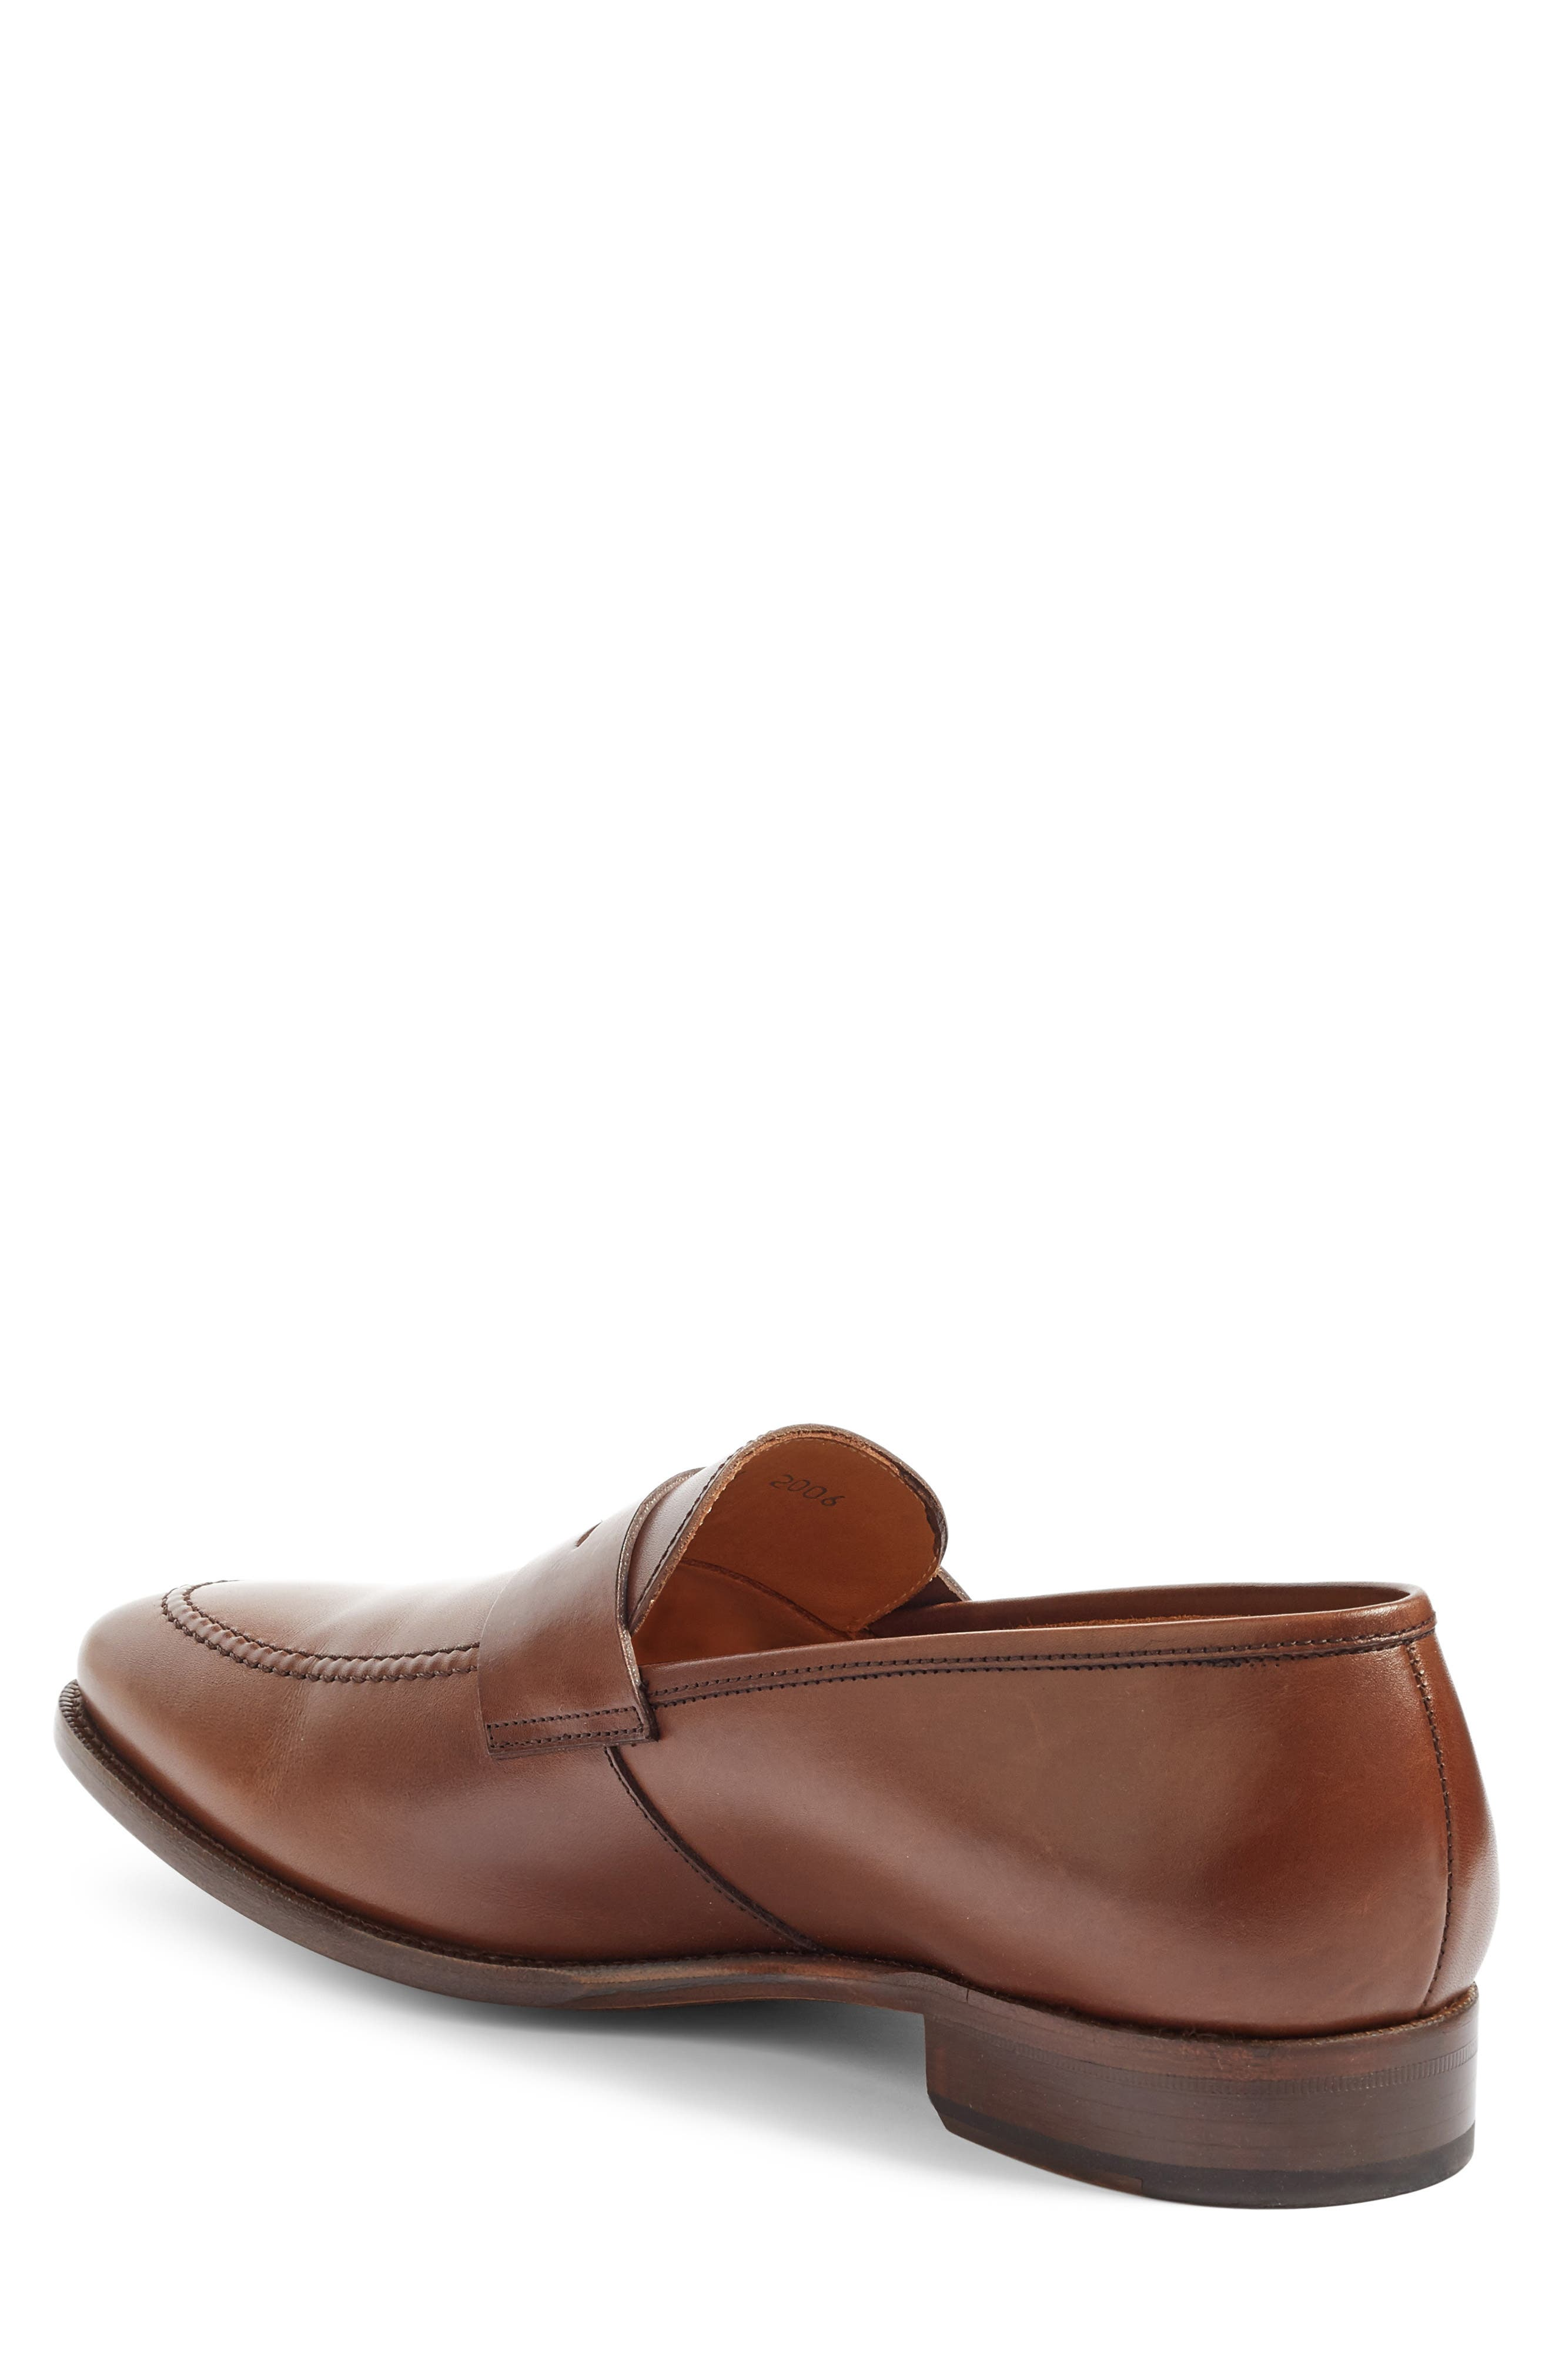 ,                             Abe Penny Loafer,                             Alternate thumbnail 12, color,                             201